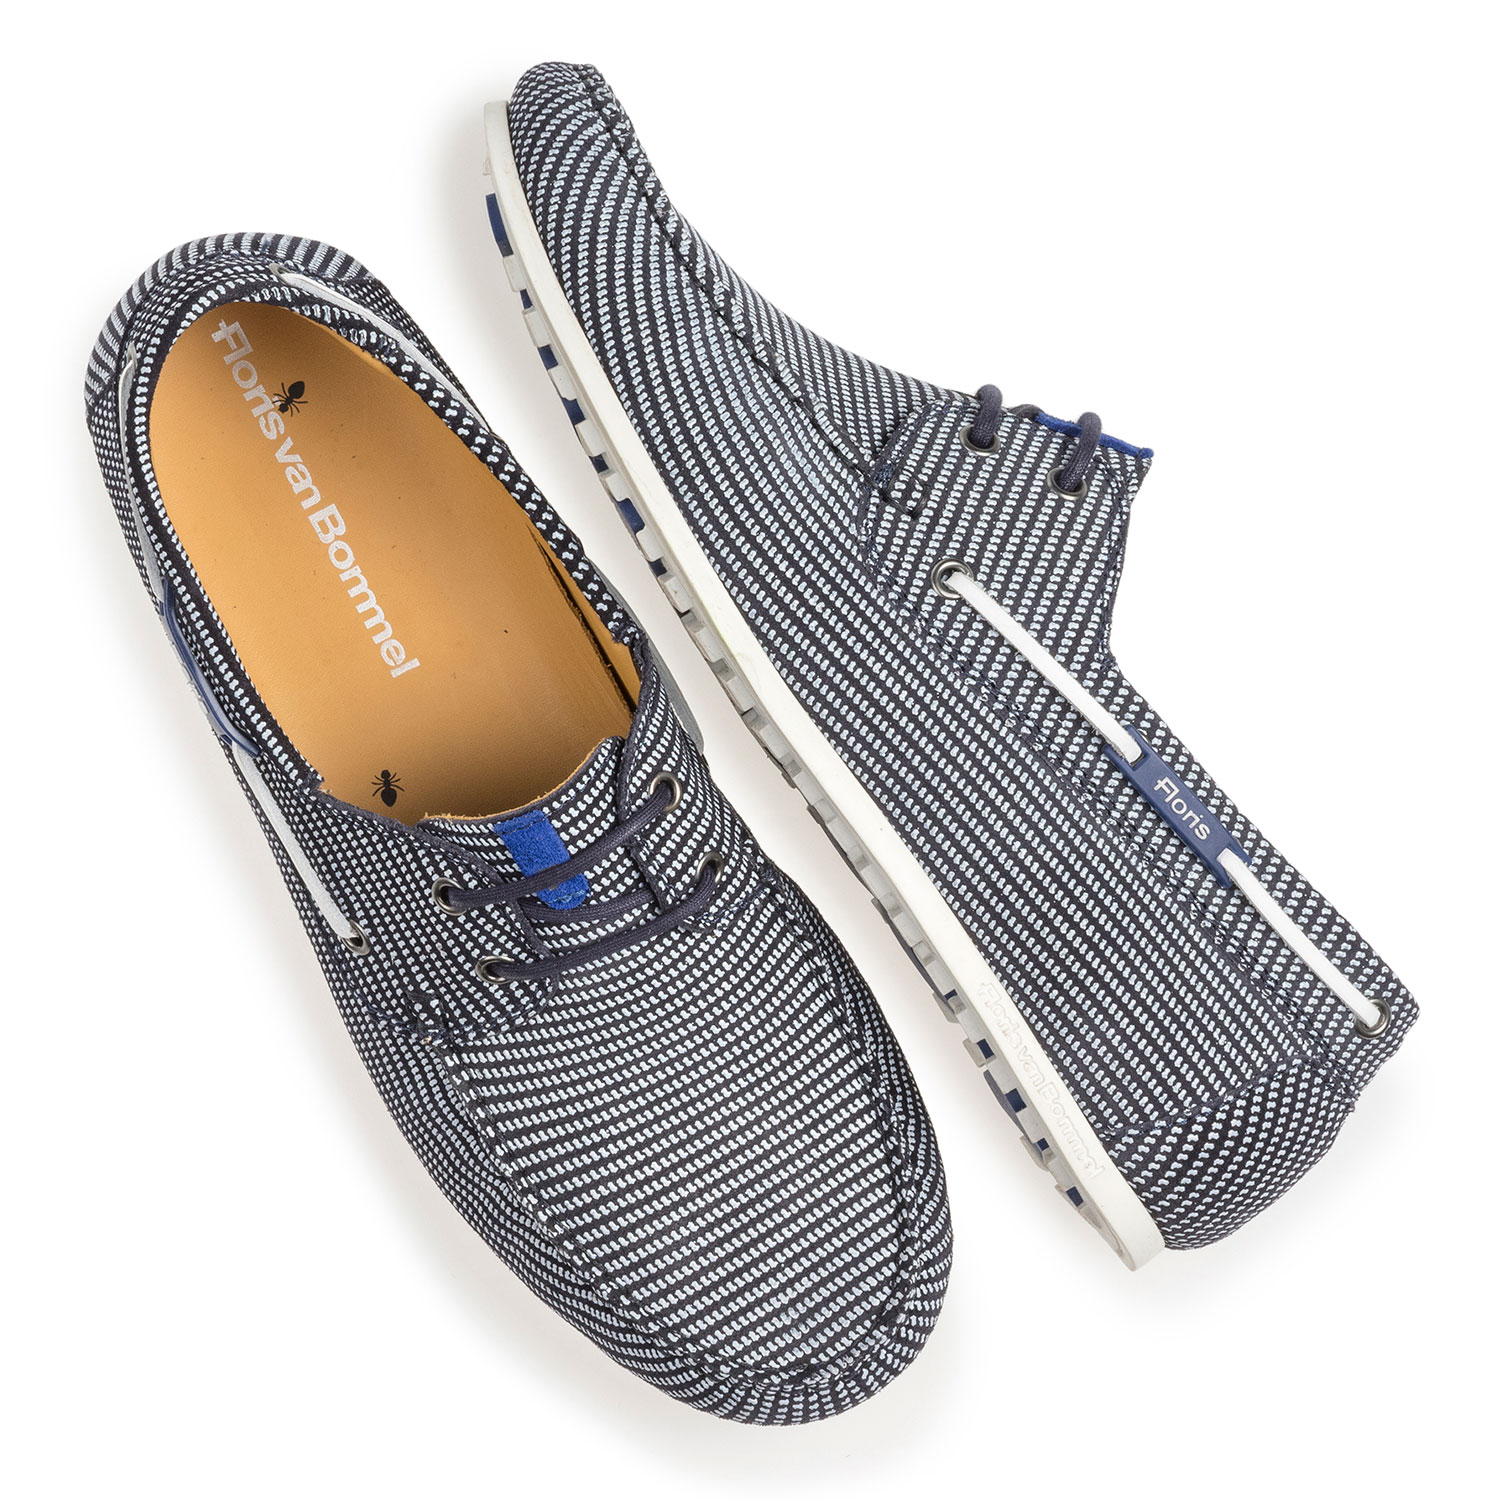 15035/10 - Blue suede leather boat shoe with print